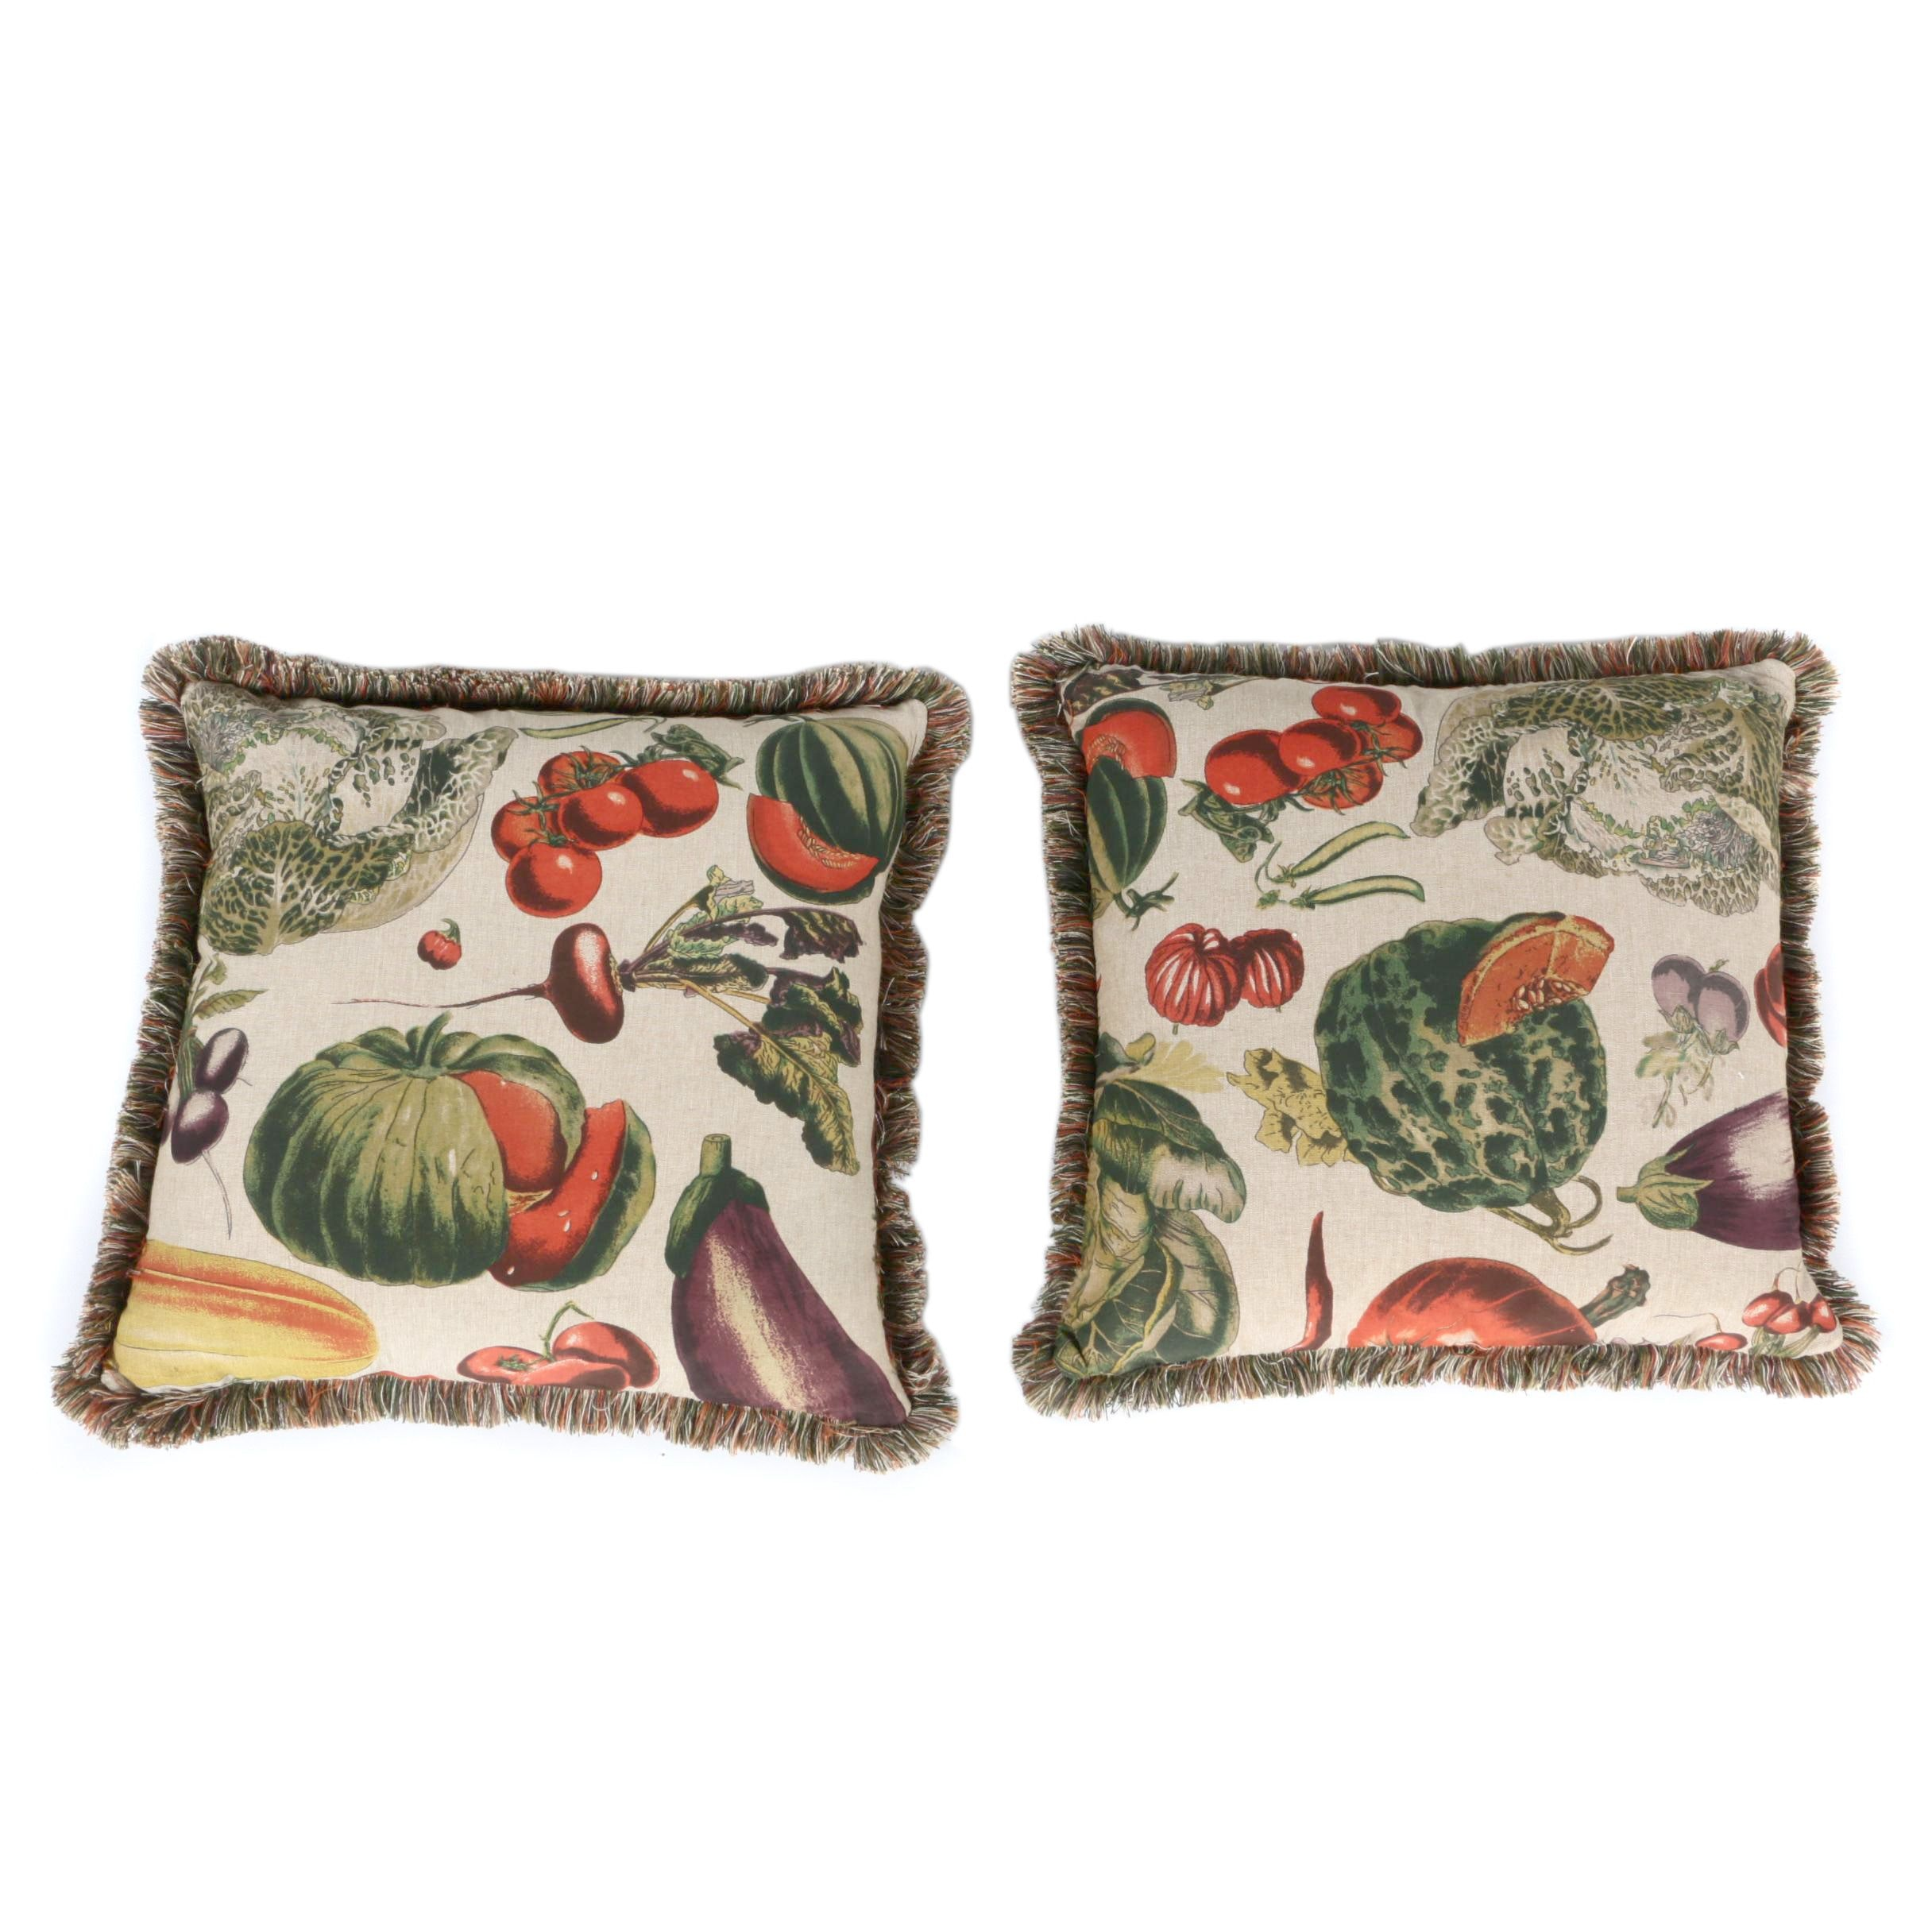 Large Vegetable Print Fabric Pillows